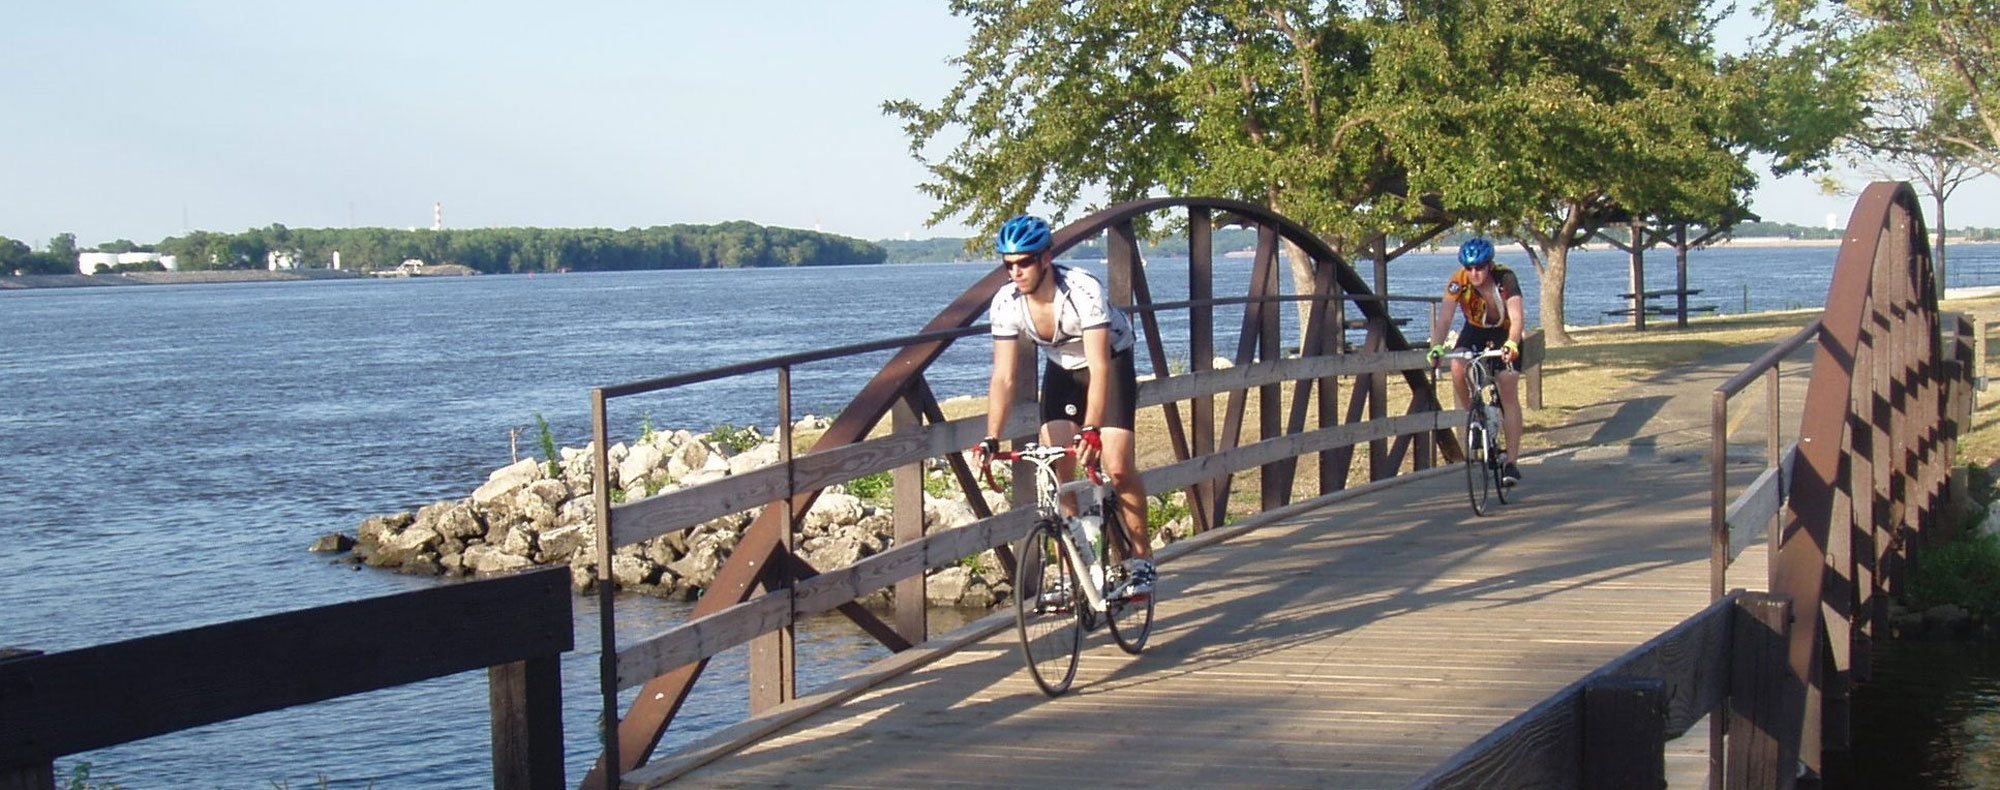 Biking Trails along the Great River Road in Illinois